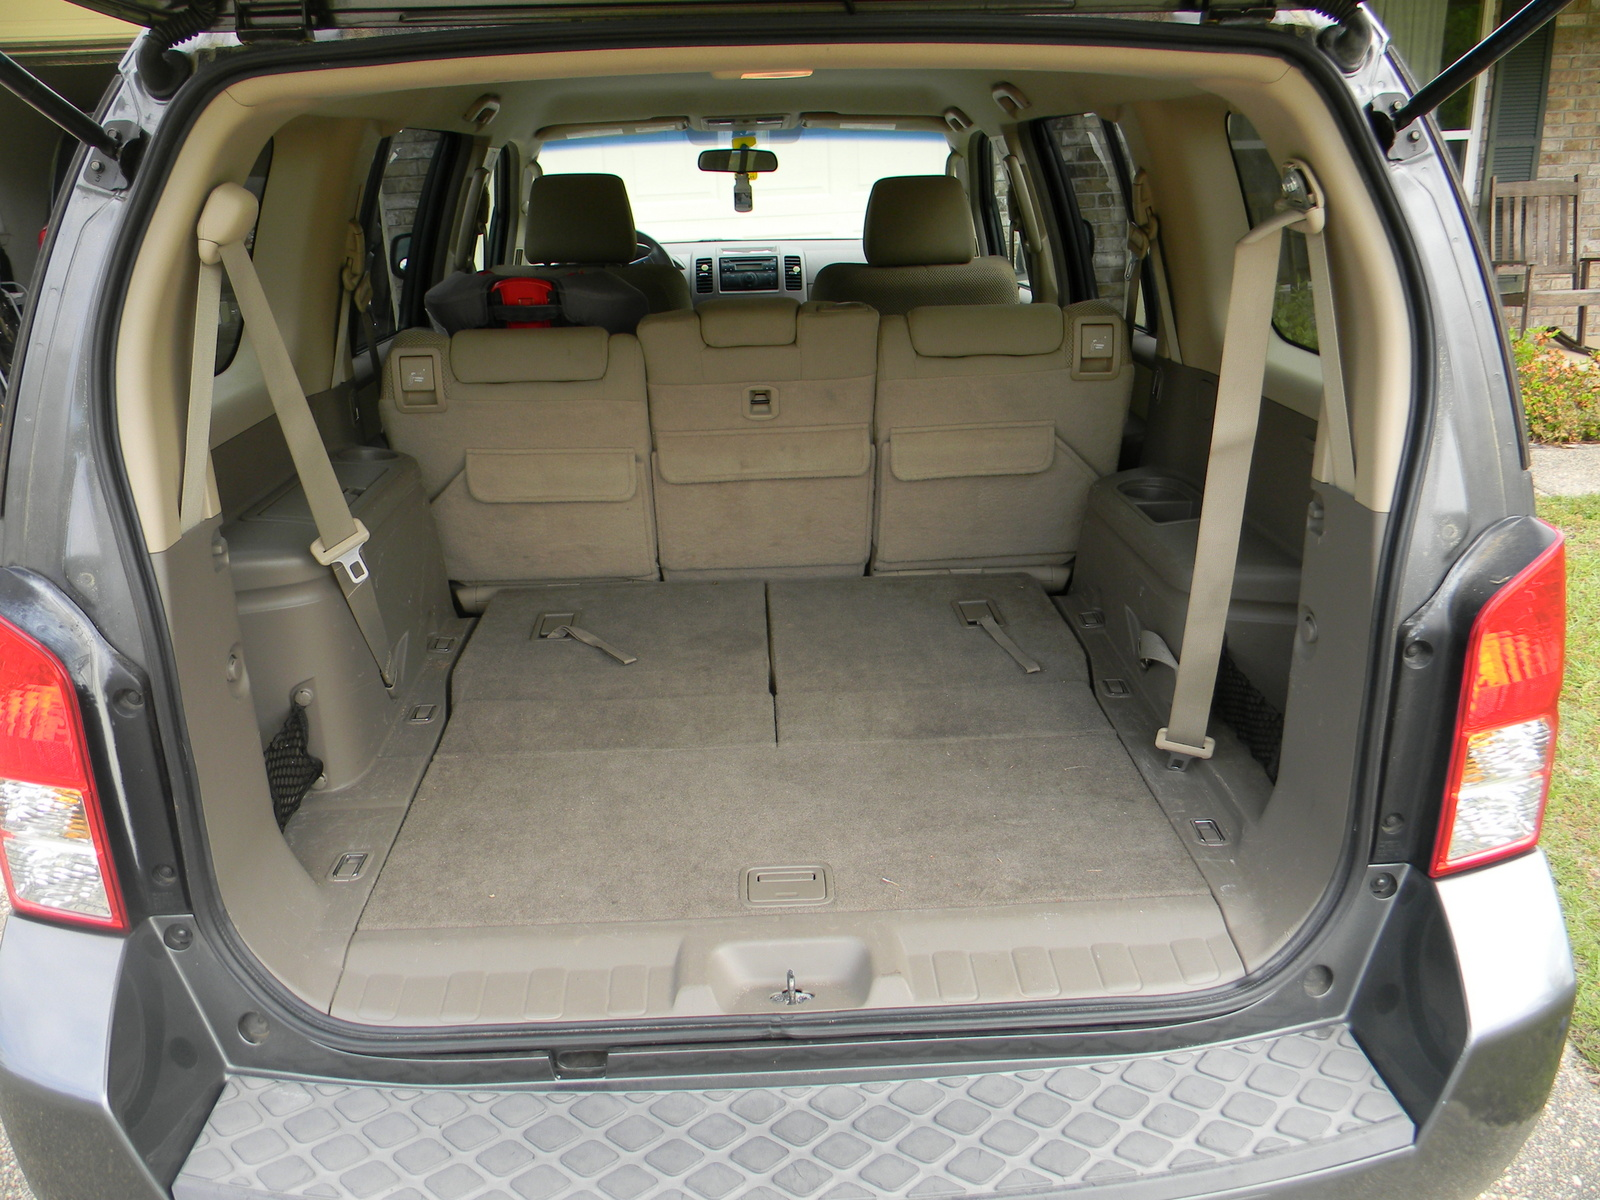 2008 nissan pathfinder pictures cargurus - 2013 nissan pathfinder interior colors ...